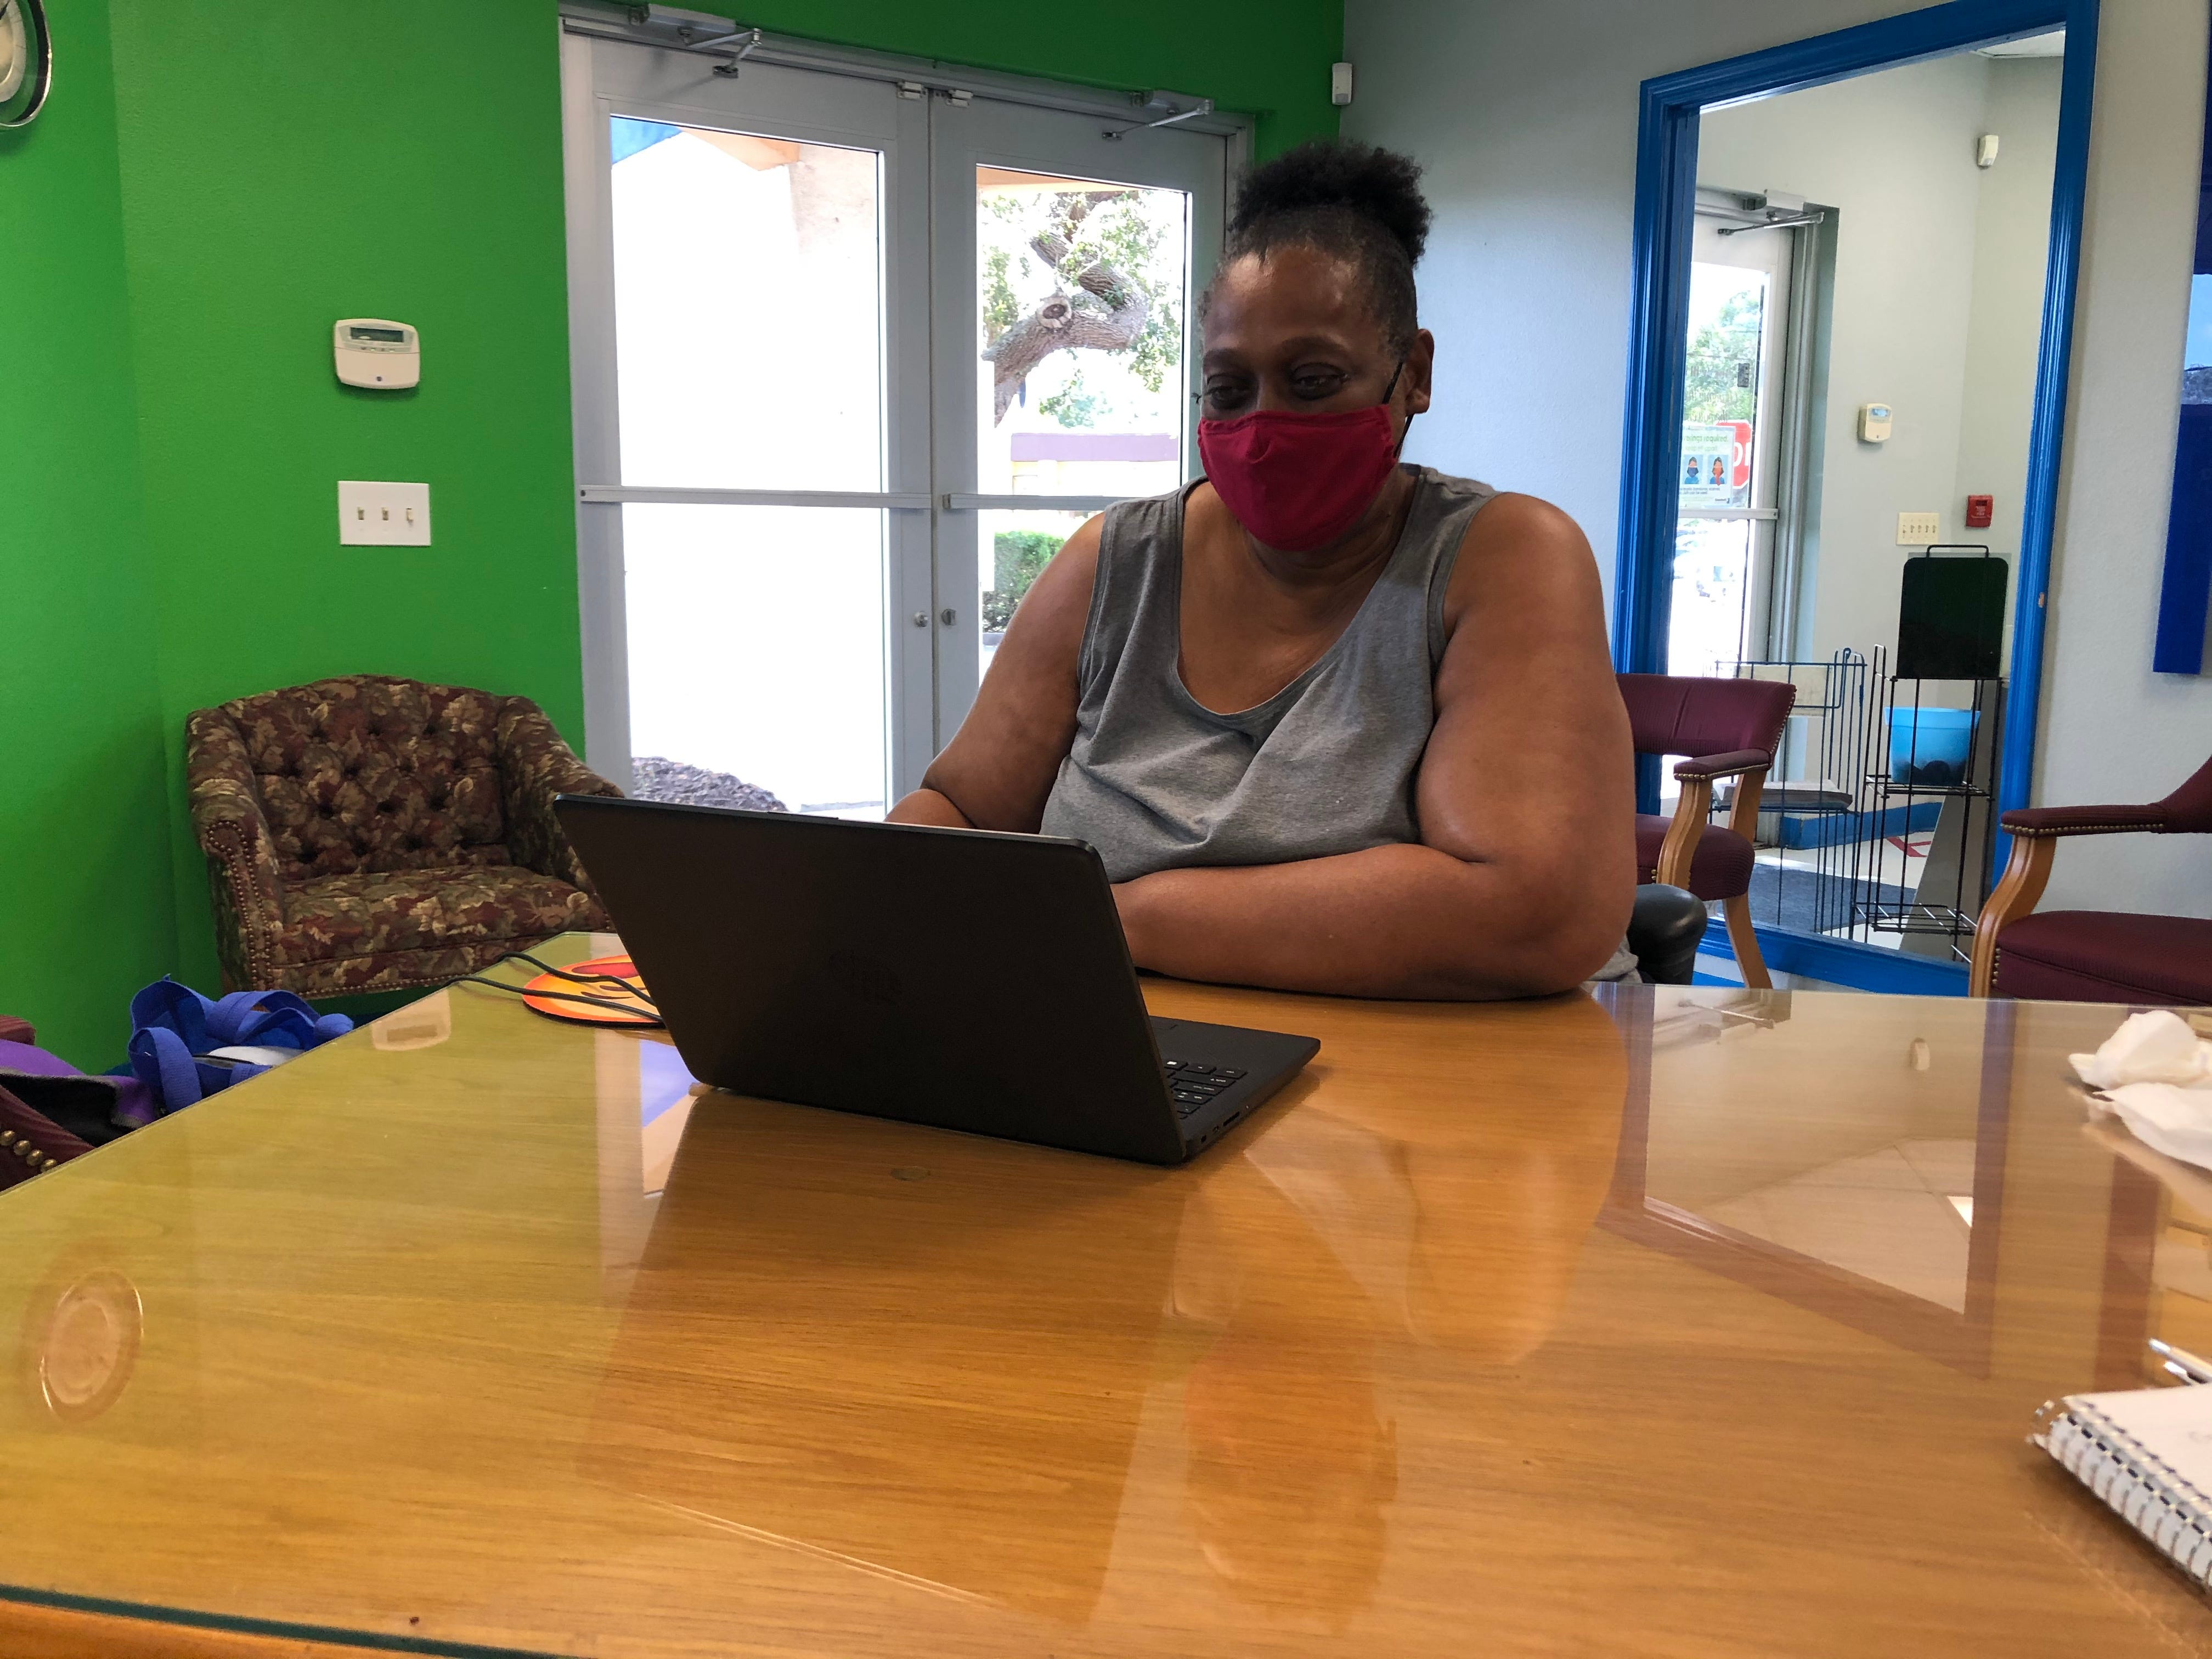 Liz Allen looks for work at Goodwill Manasota's Job Connection office in Newton on the computer she got from the Tech to Connect pilot program.